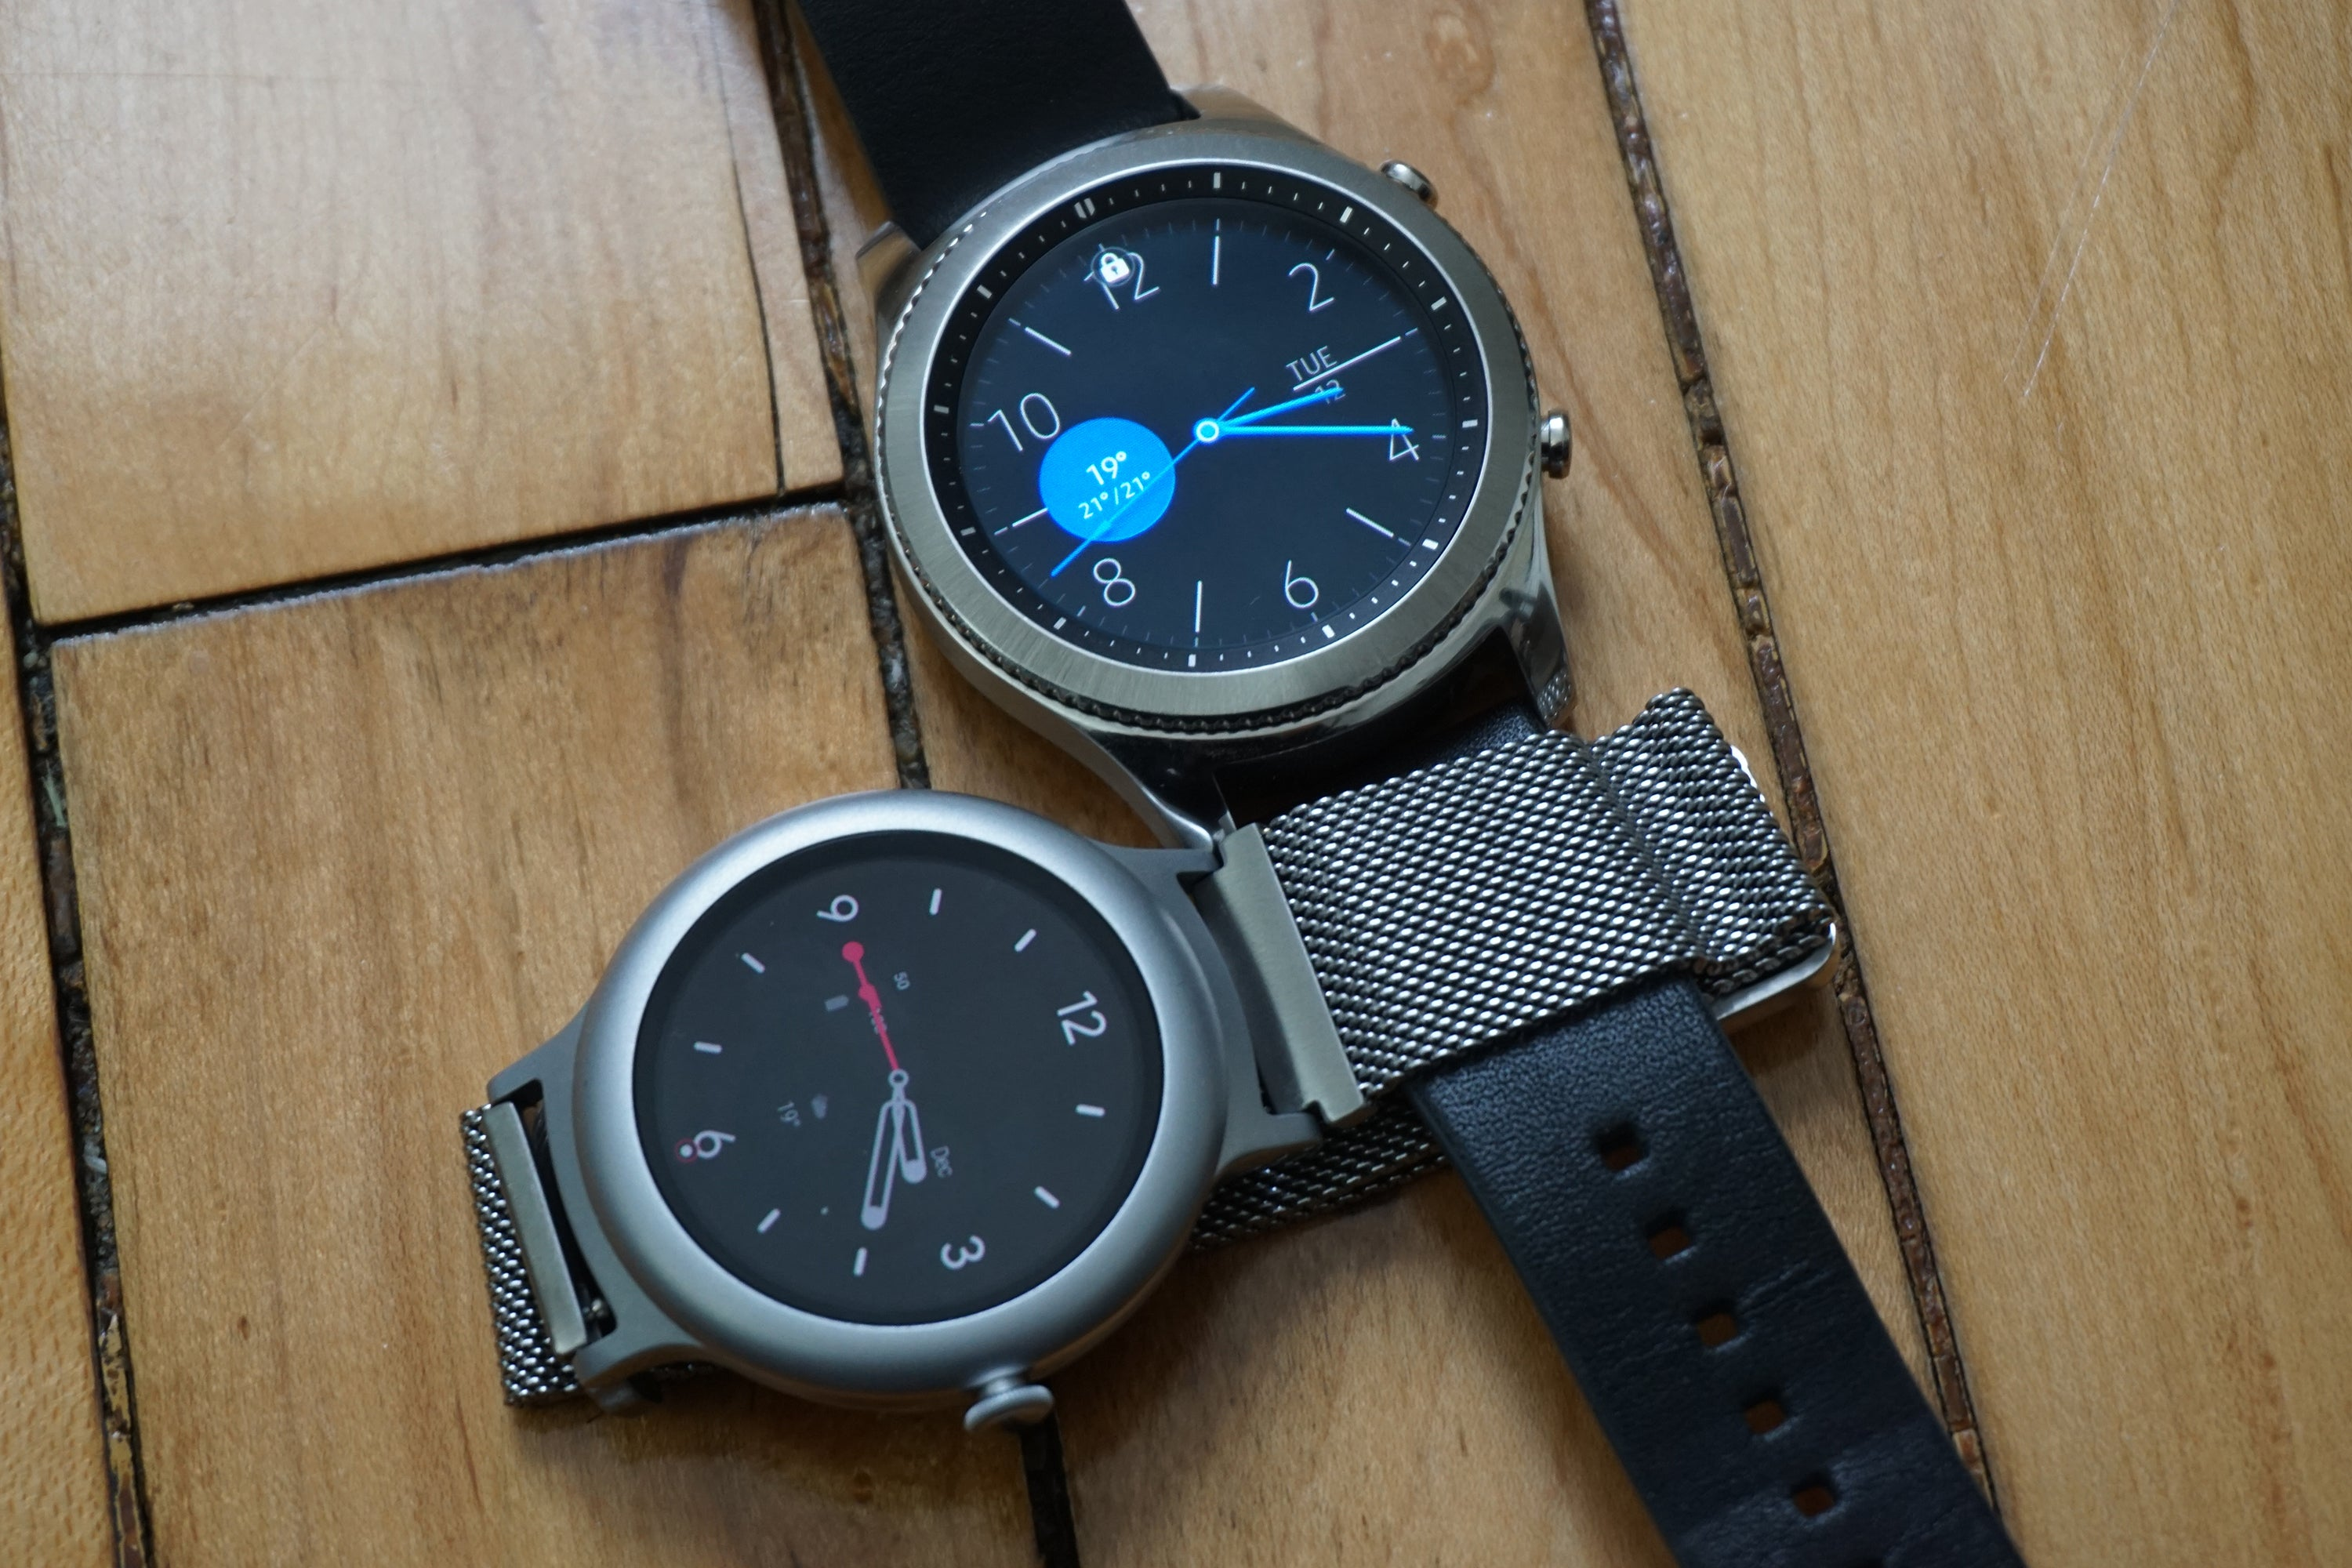 Android Wear Vs Samsung Gear Which Smartwatch Should You Buy S3 Frontier Double Side Strap Only Pcworld